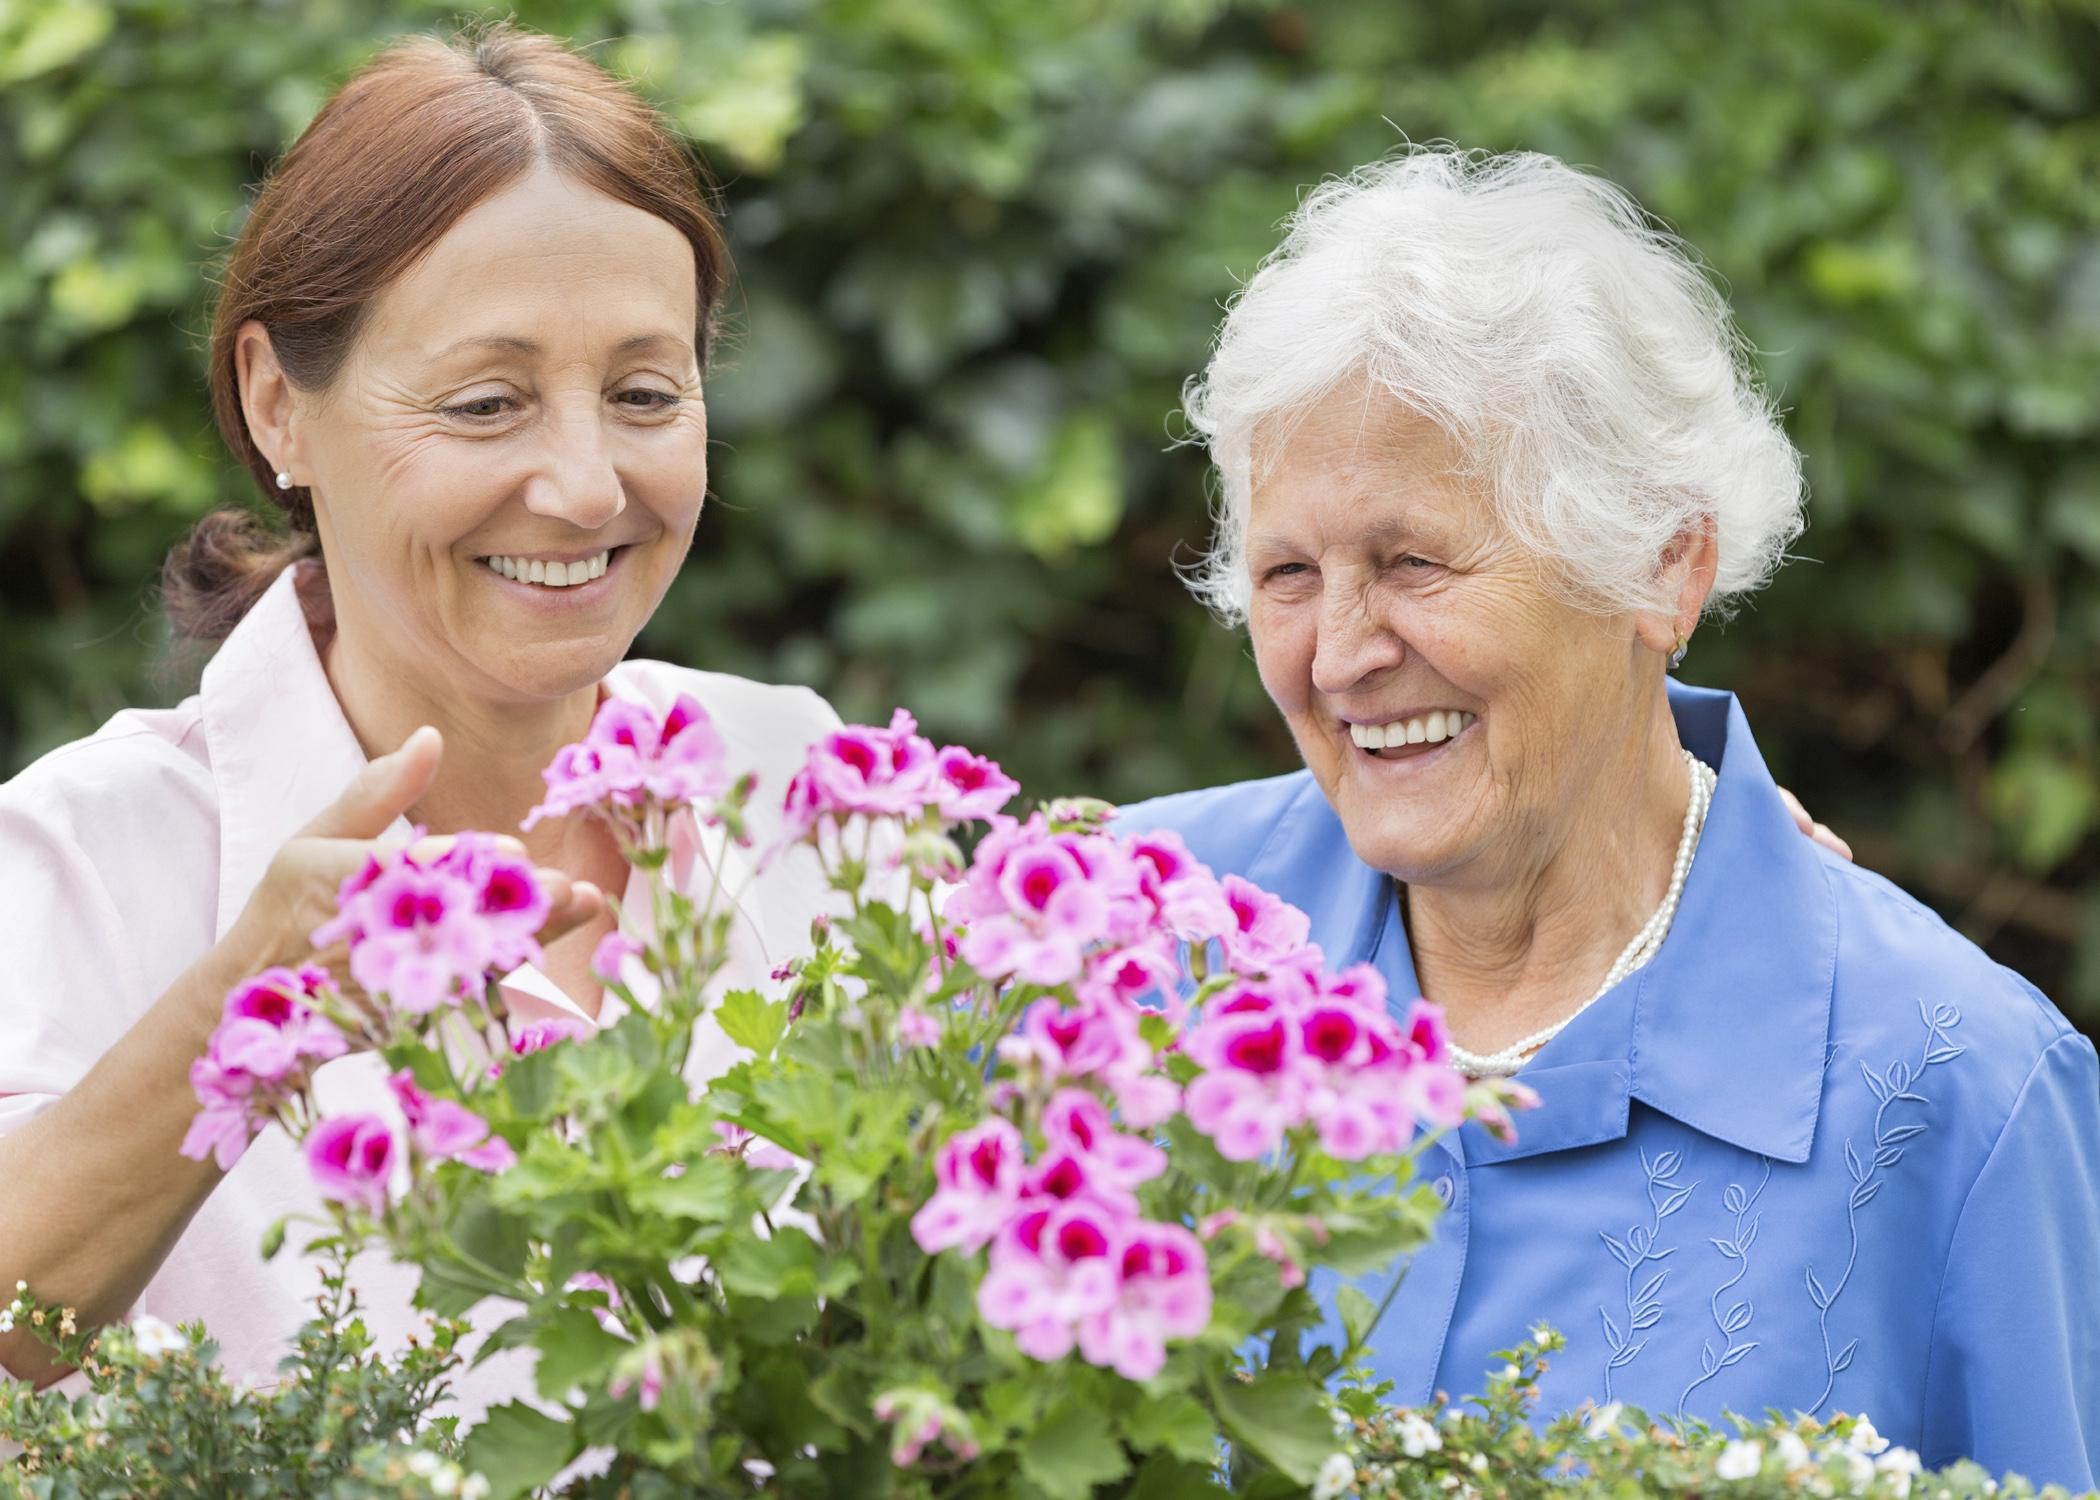 Milder forms of depression in older Americans responds to creative activities such as knitting or gardening as well as by getting more involved in the community through volunteering. (Photo by iStock)